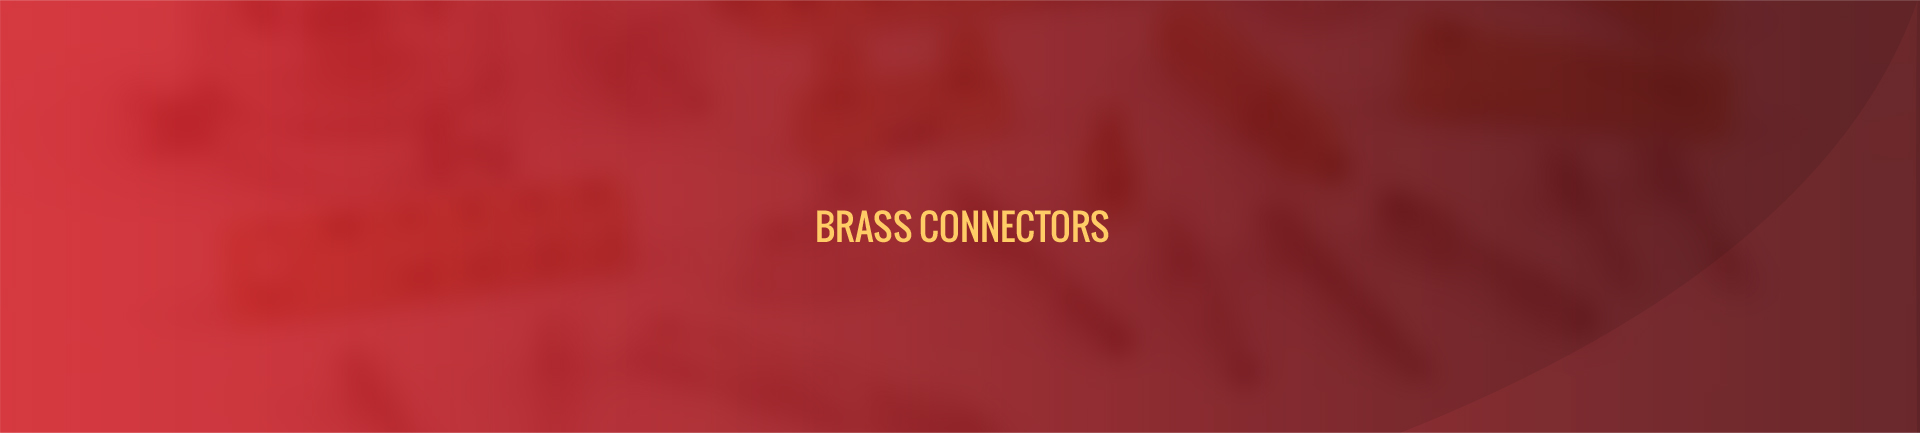 brass-connectors-banner